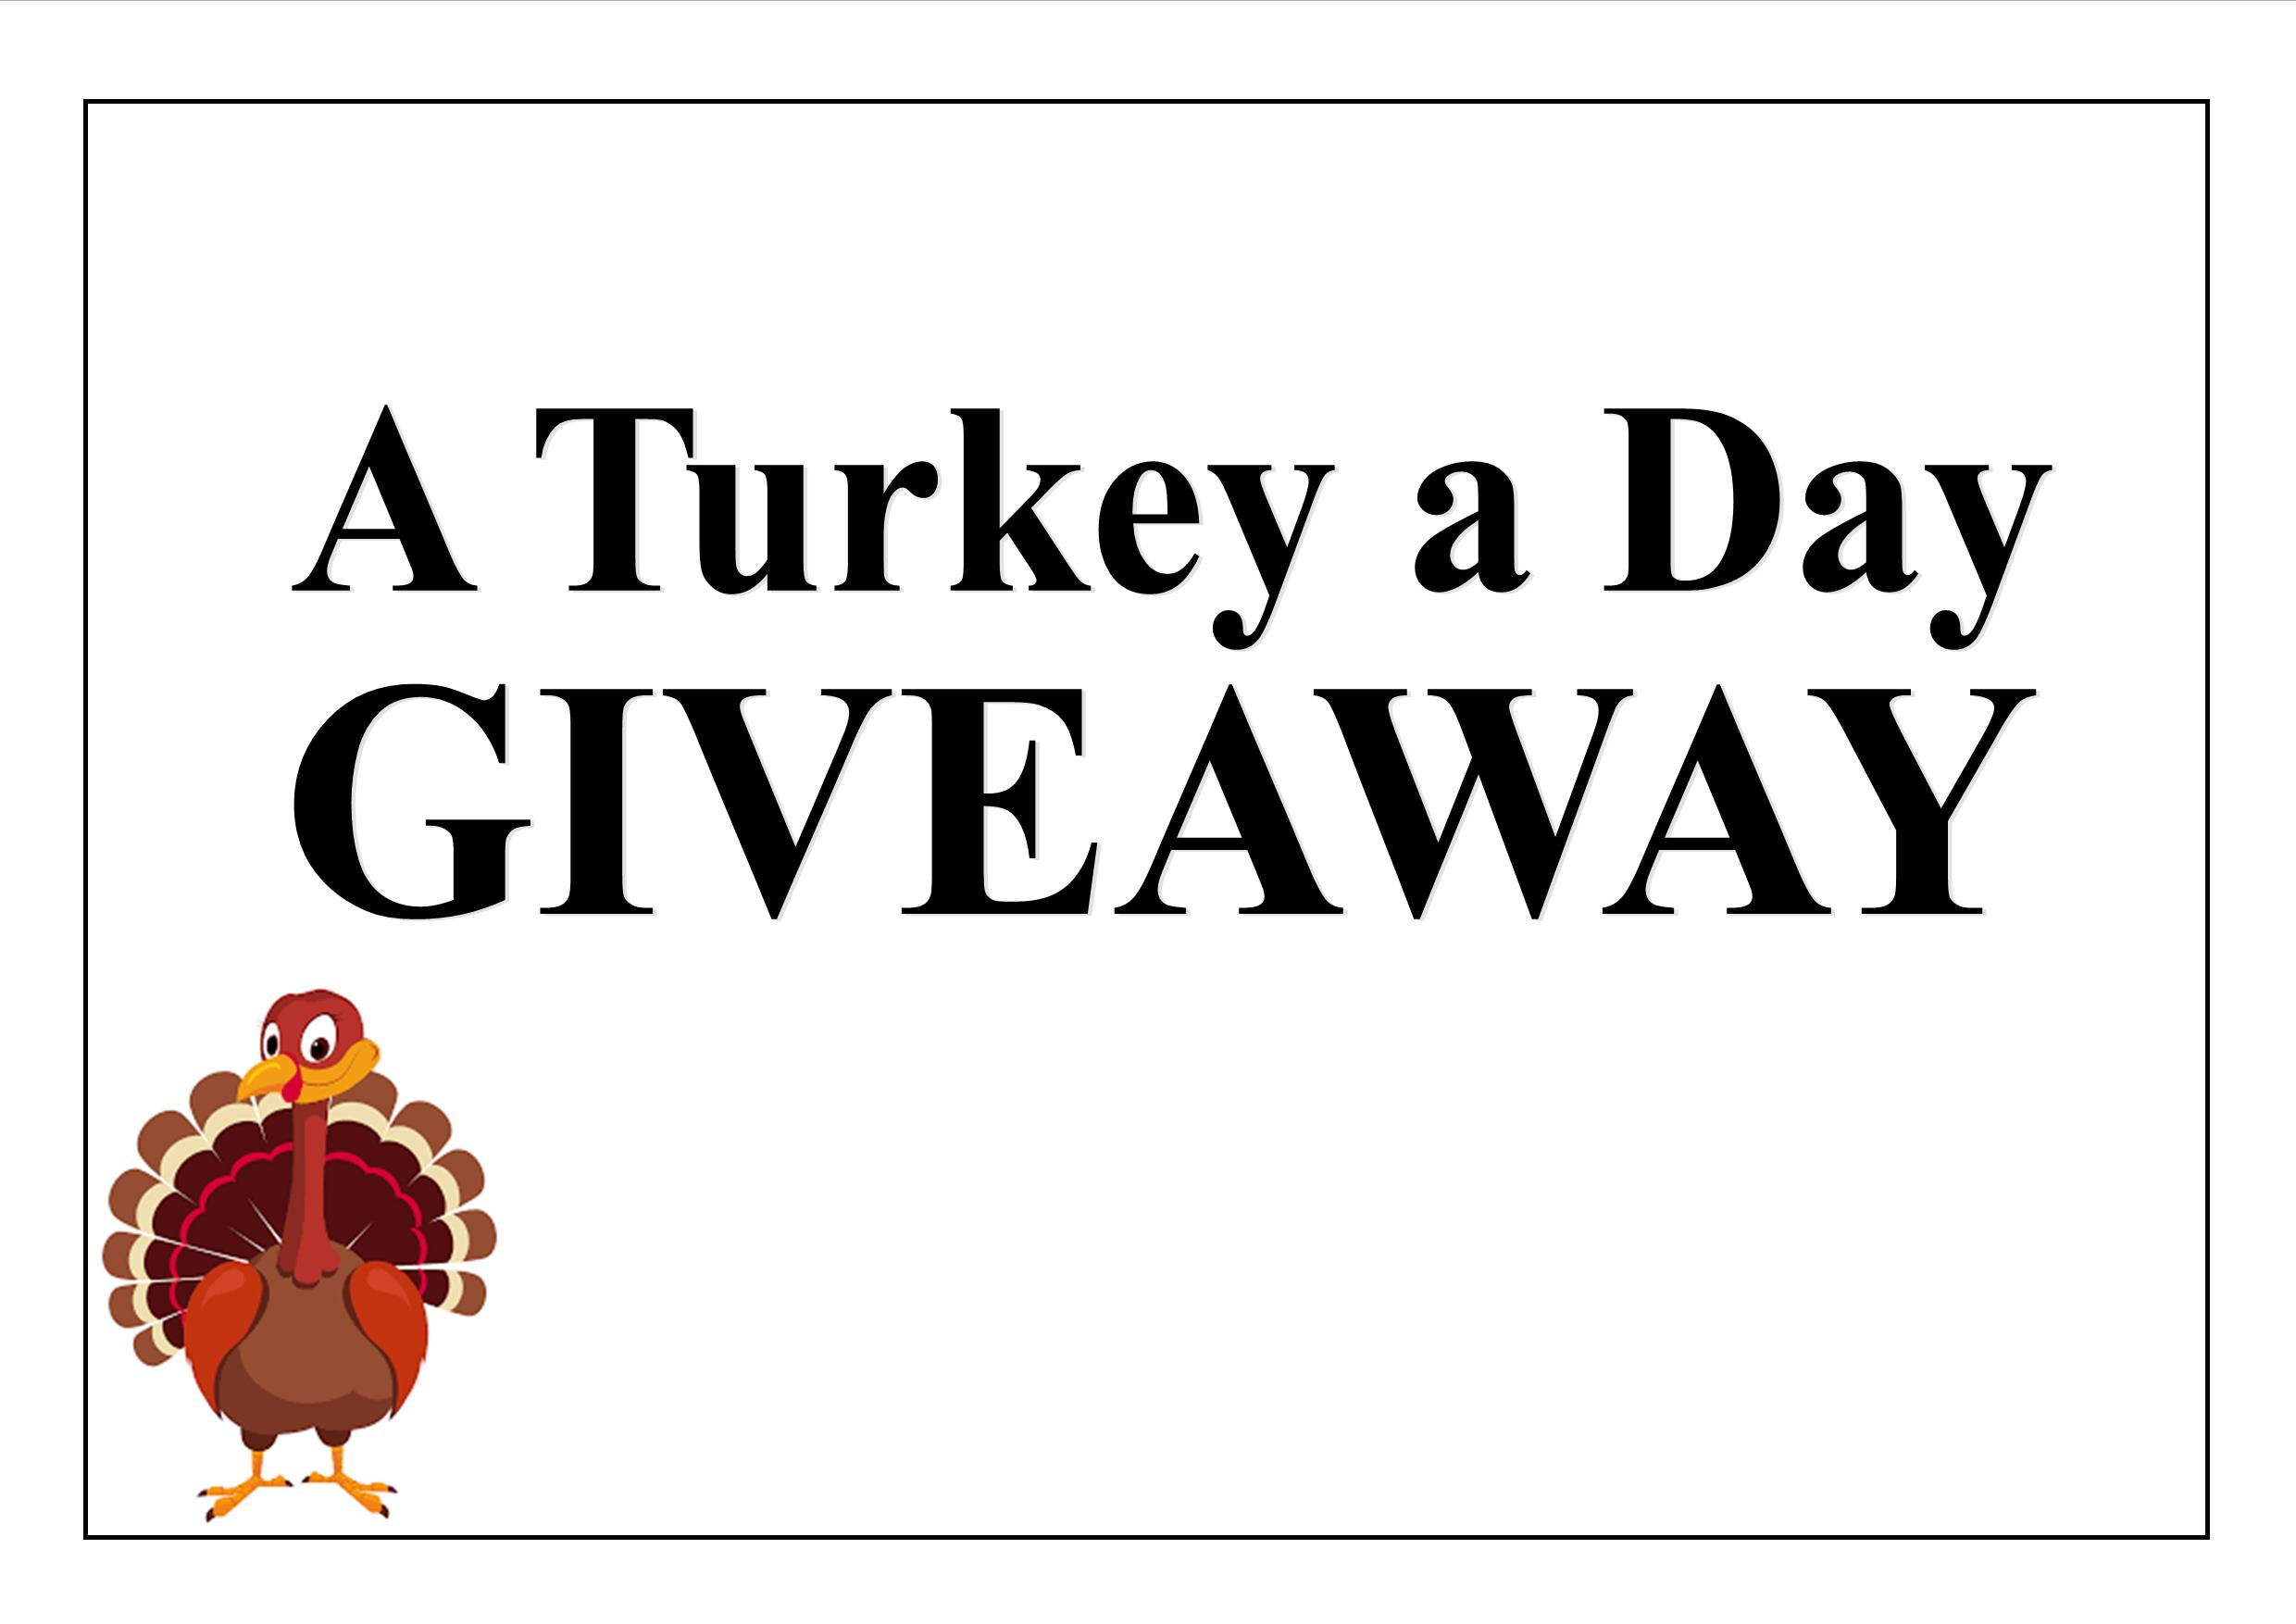 Turkey a Day Giveaway